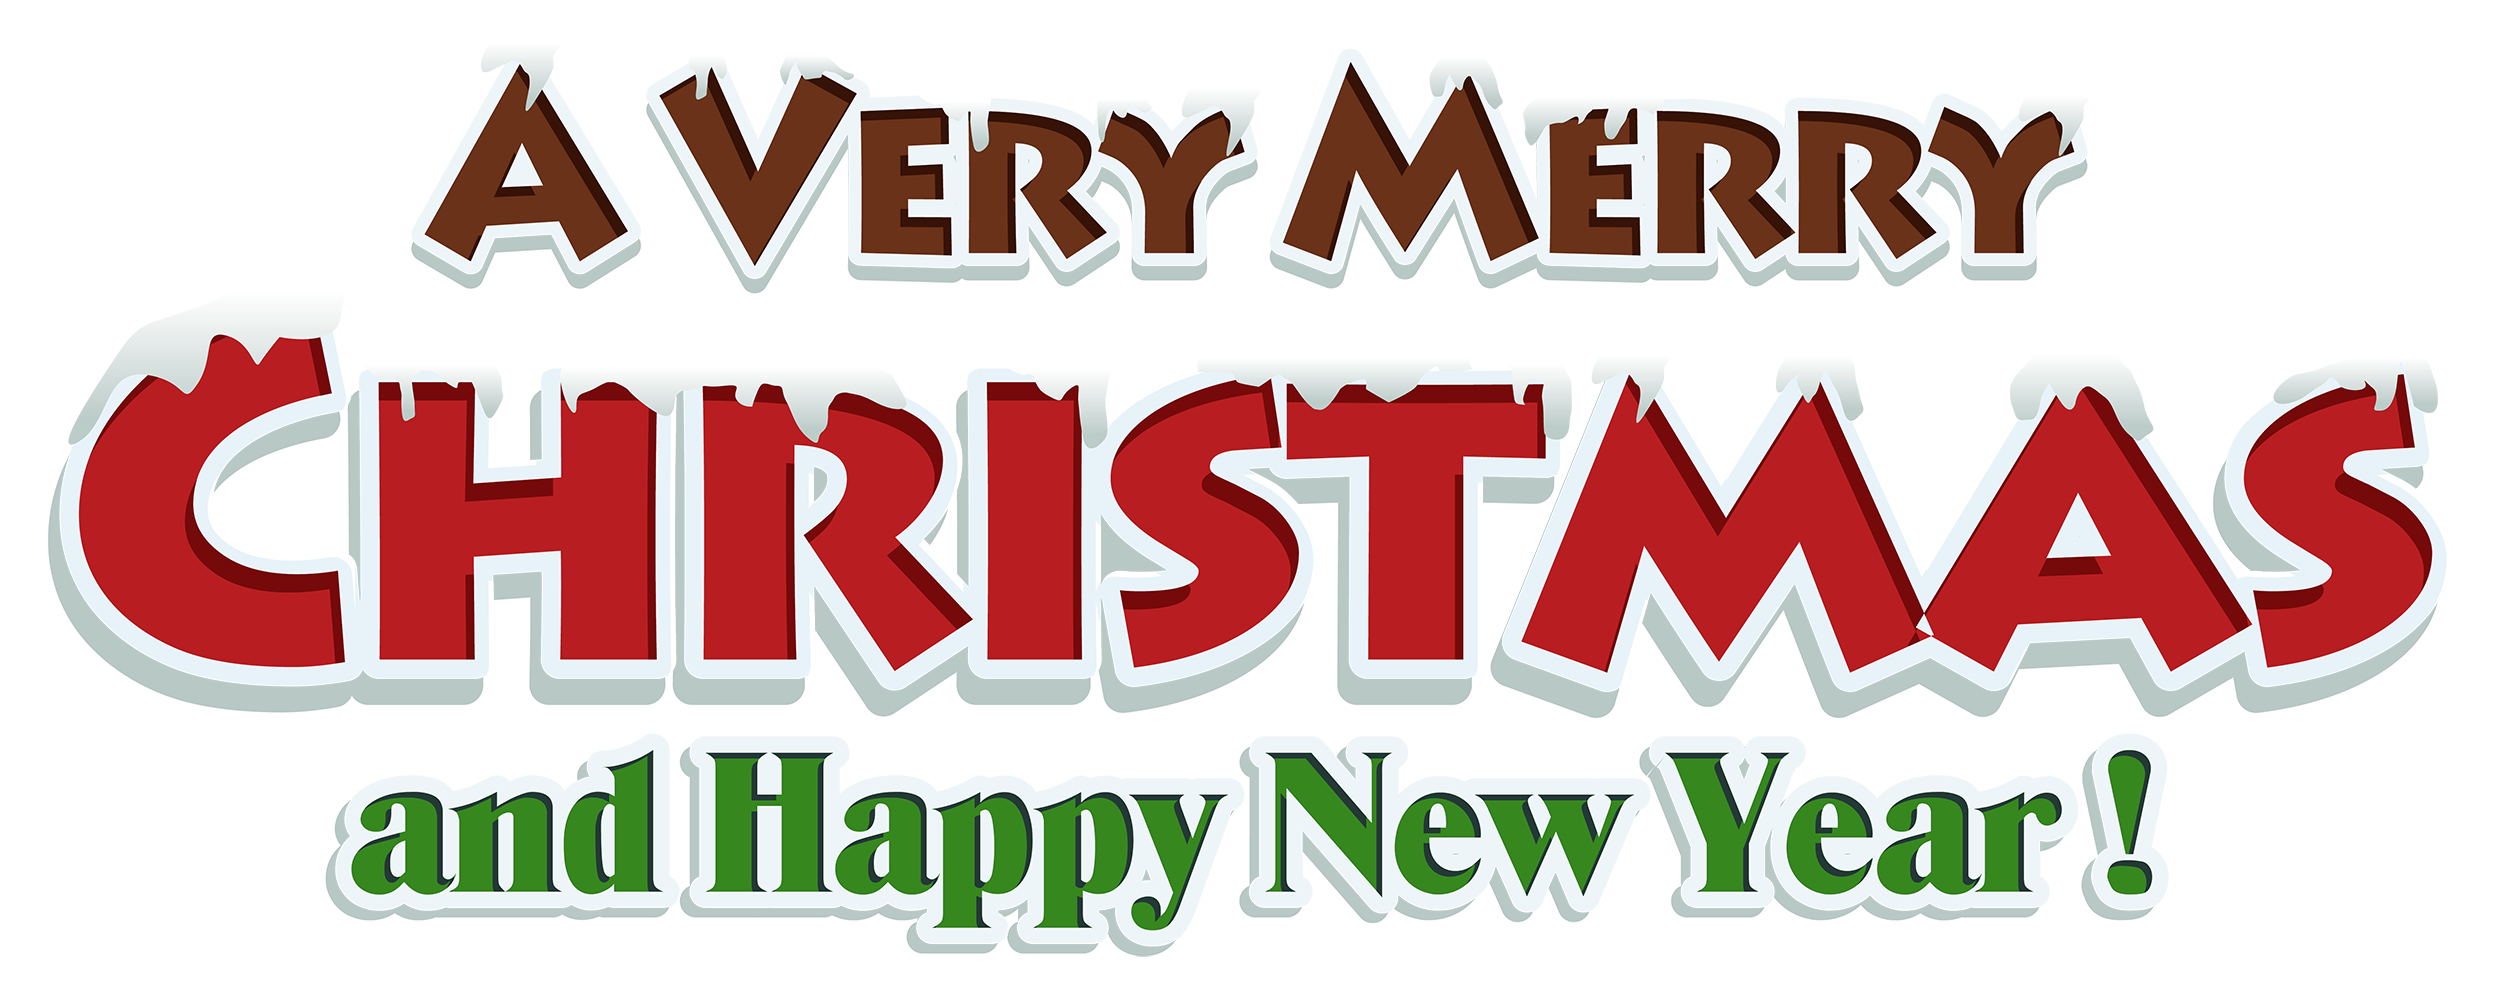 Merry Christmas Clipart .-Merry Christmas Clipart .-14